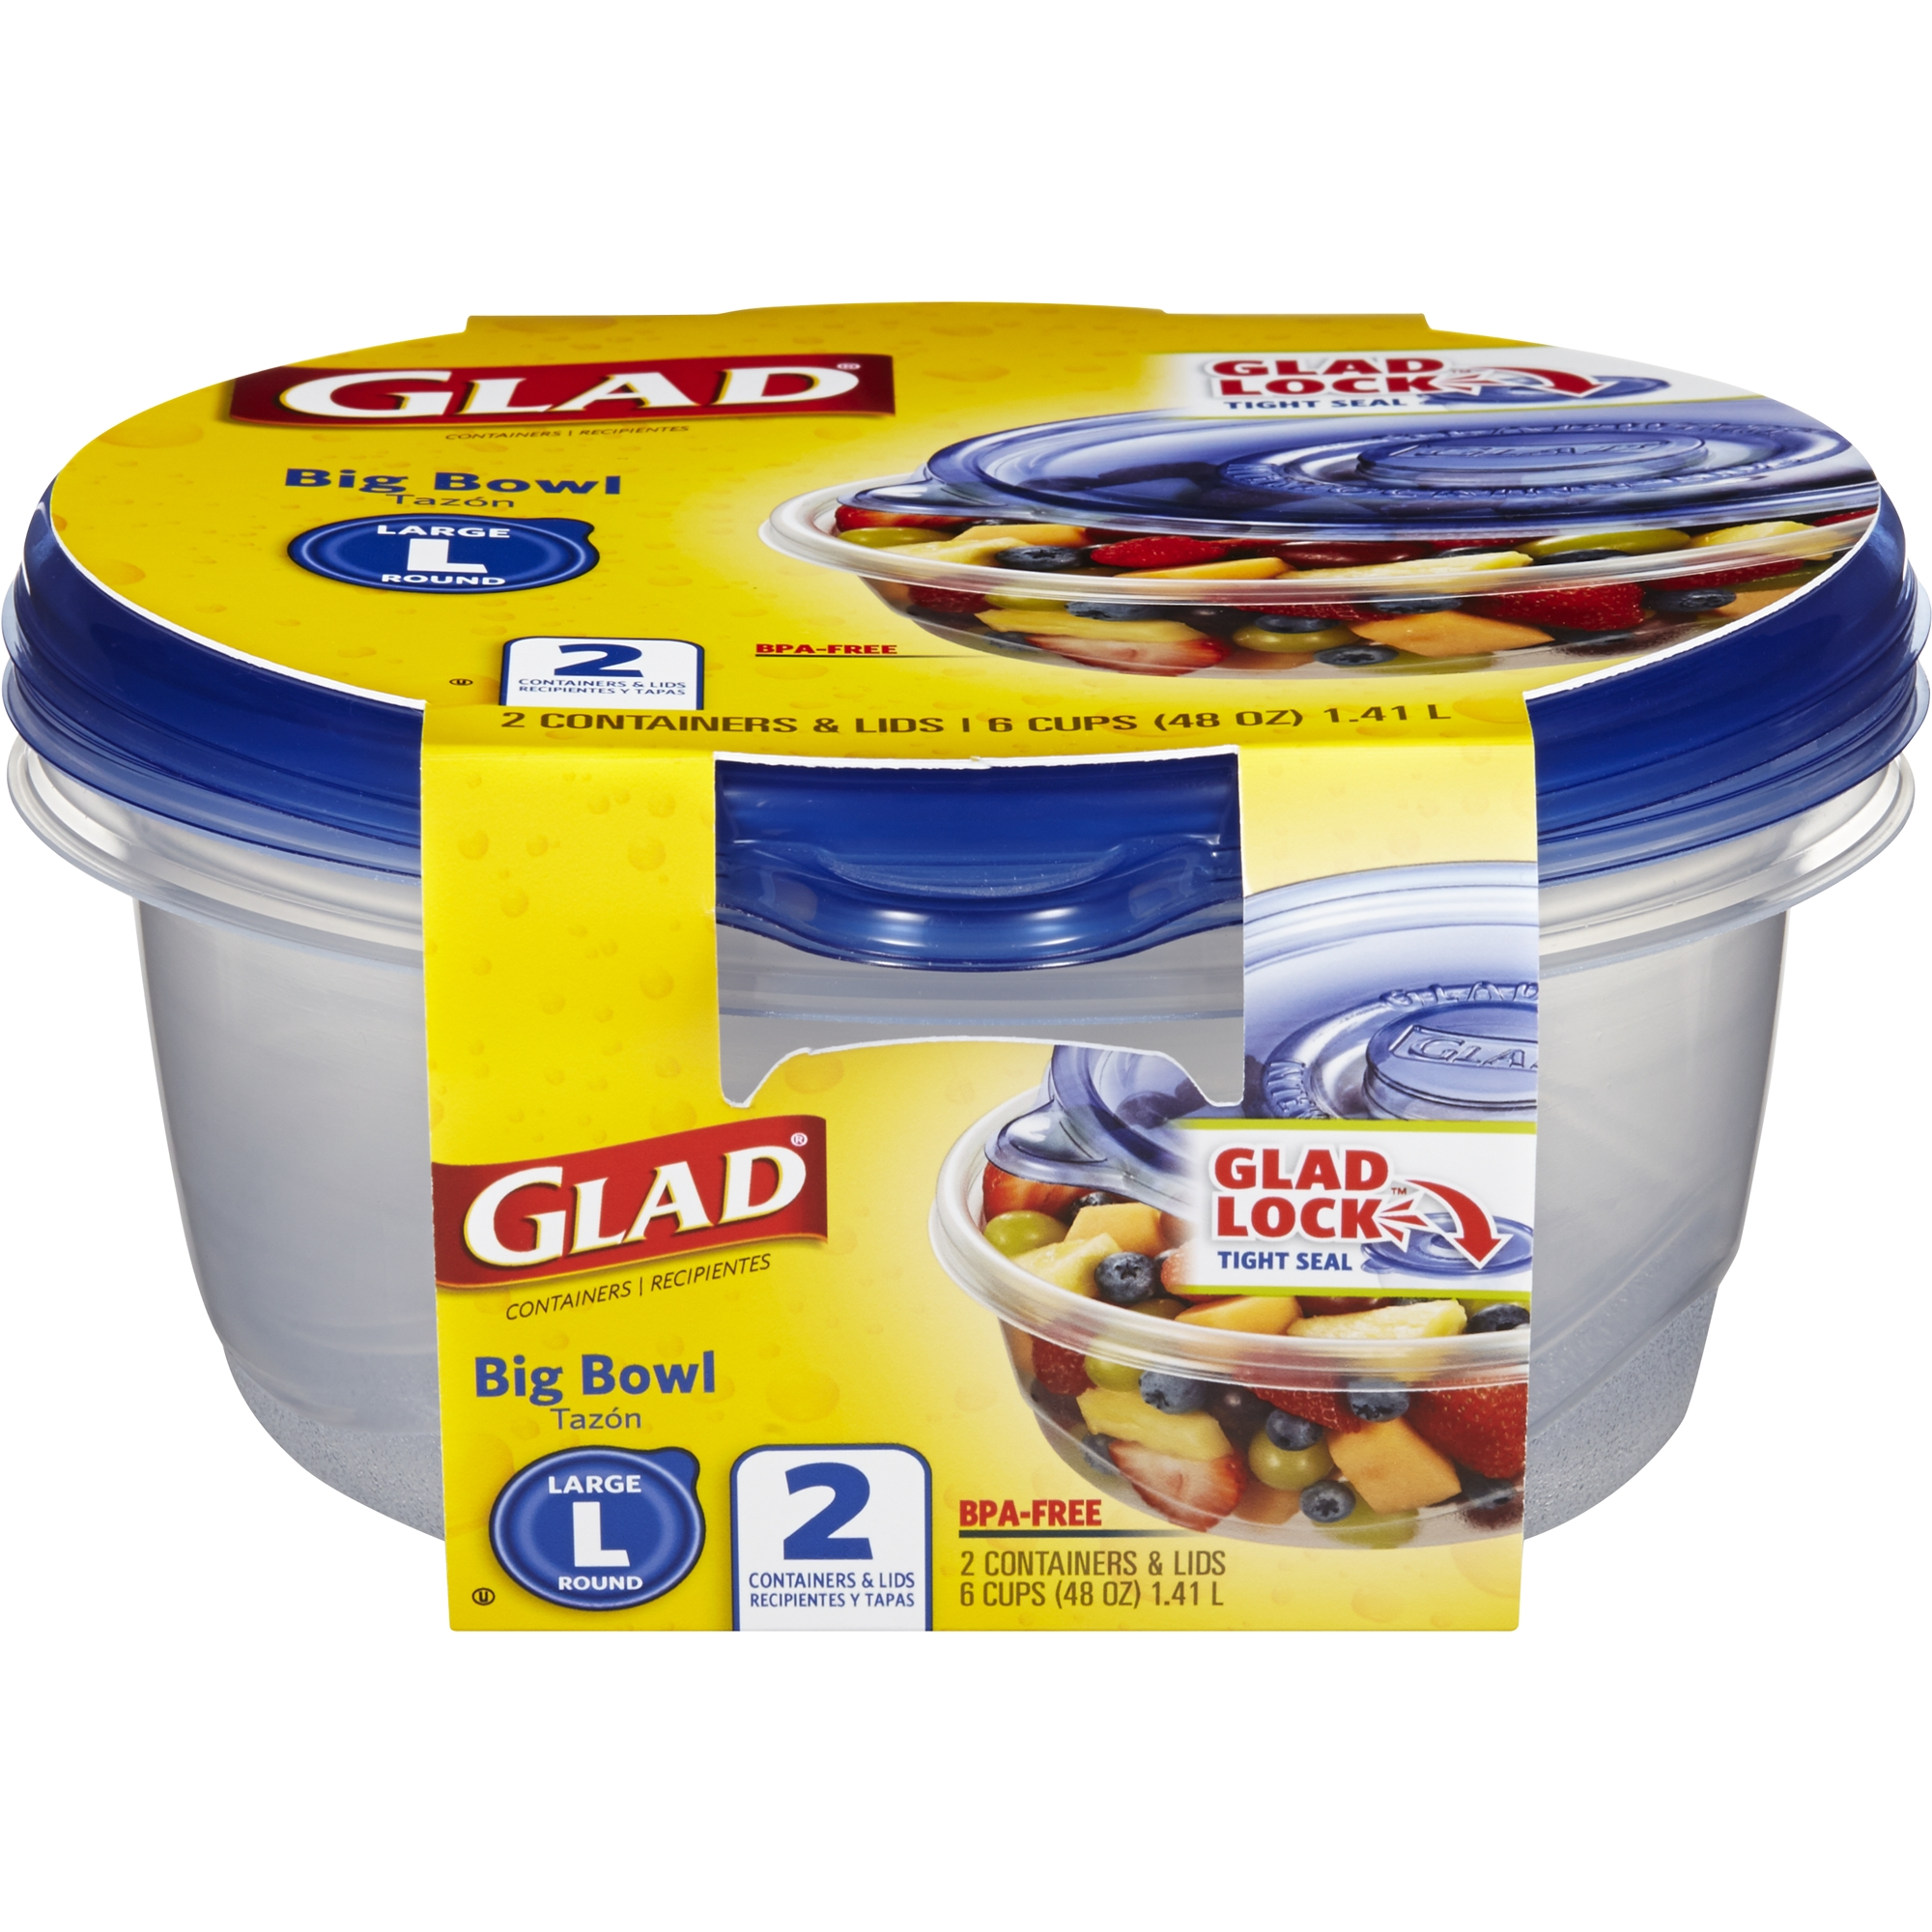 Glad Food Storage Containers - Big Bowl Container - 48 oz - 2 Containers